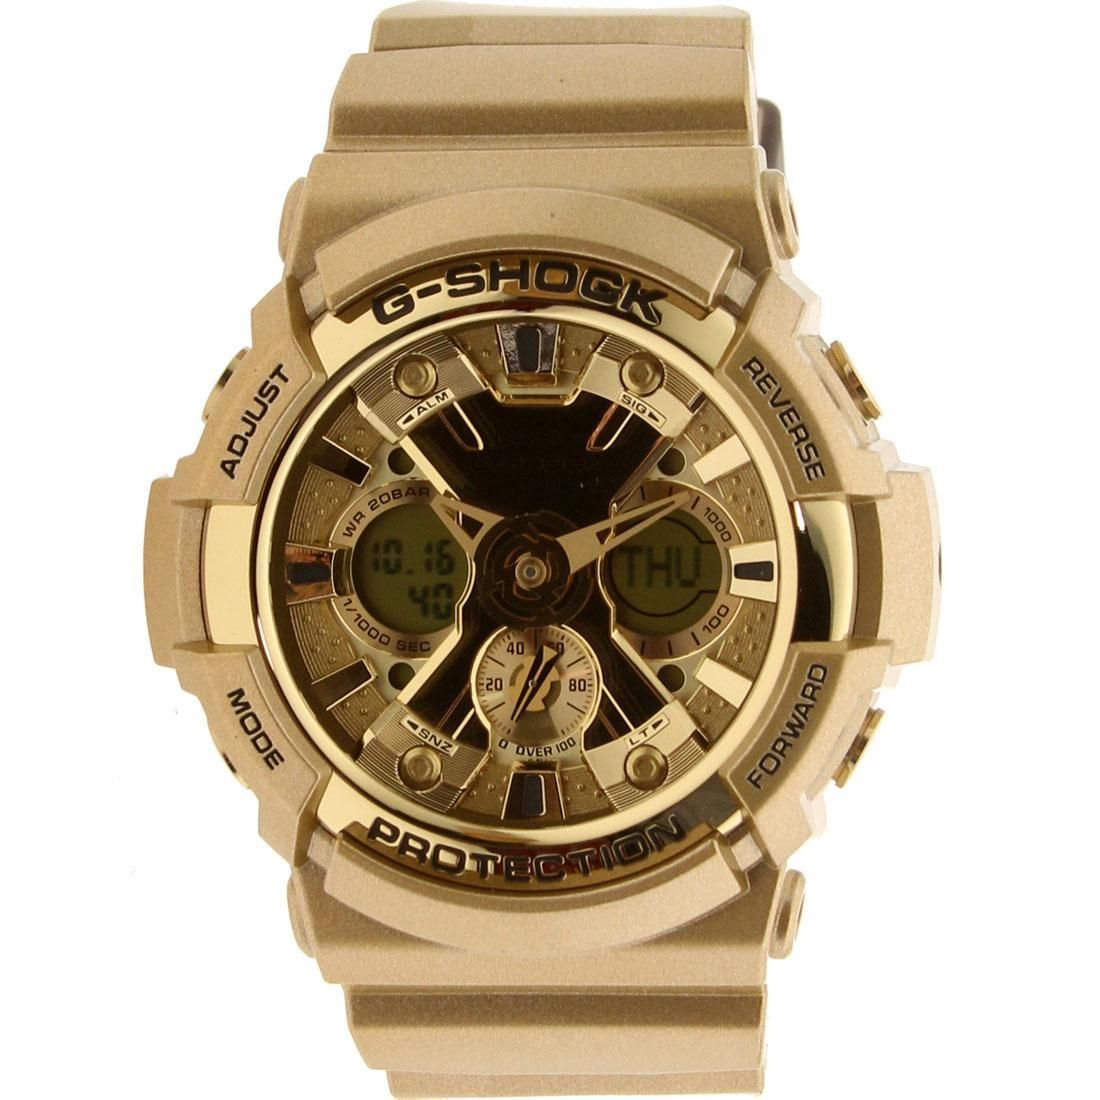 Gold G Shock Watch Bing Images S Watches In 2018 Casio Gshock Original Gd 100ms 3er Limited Colorway